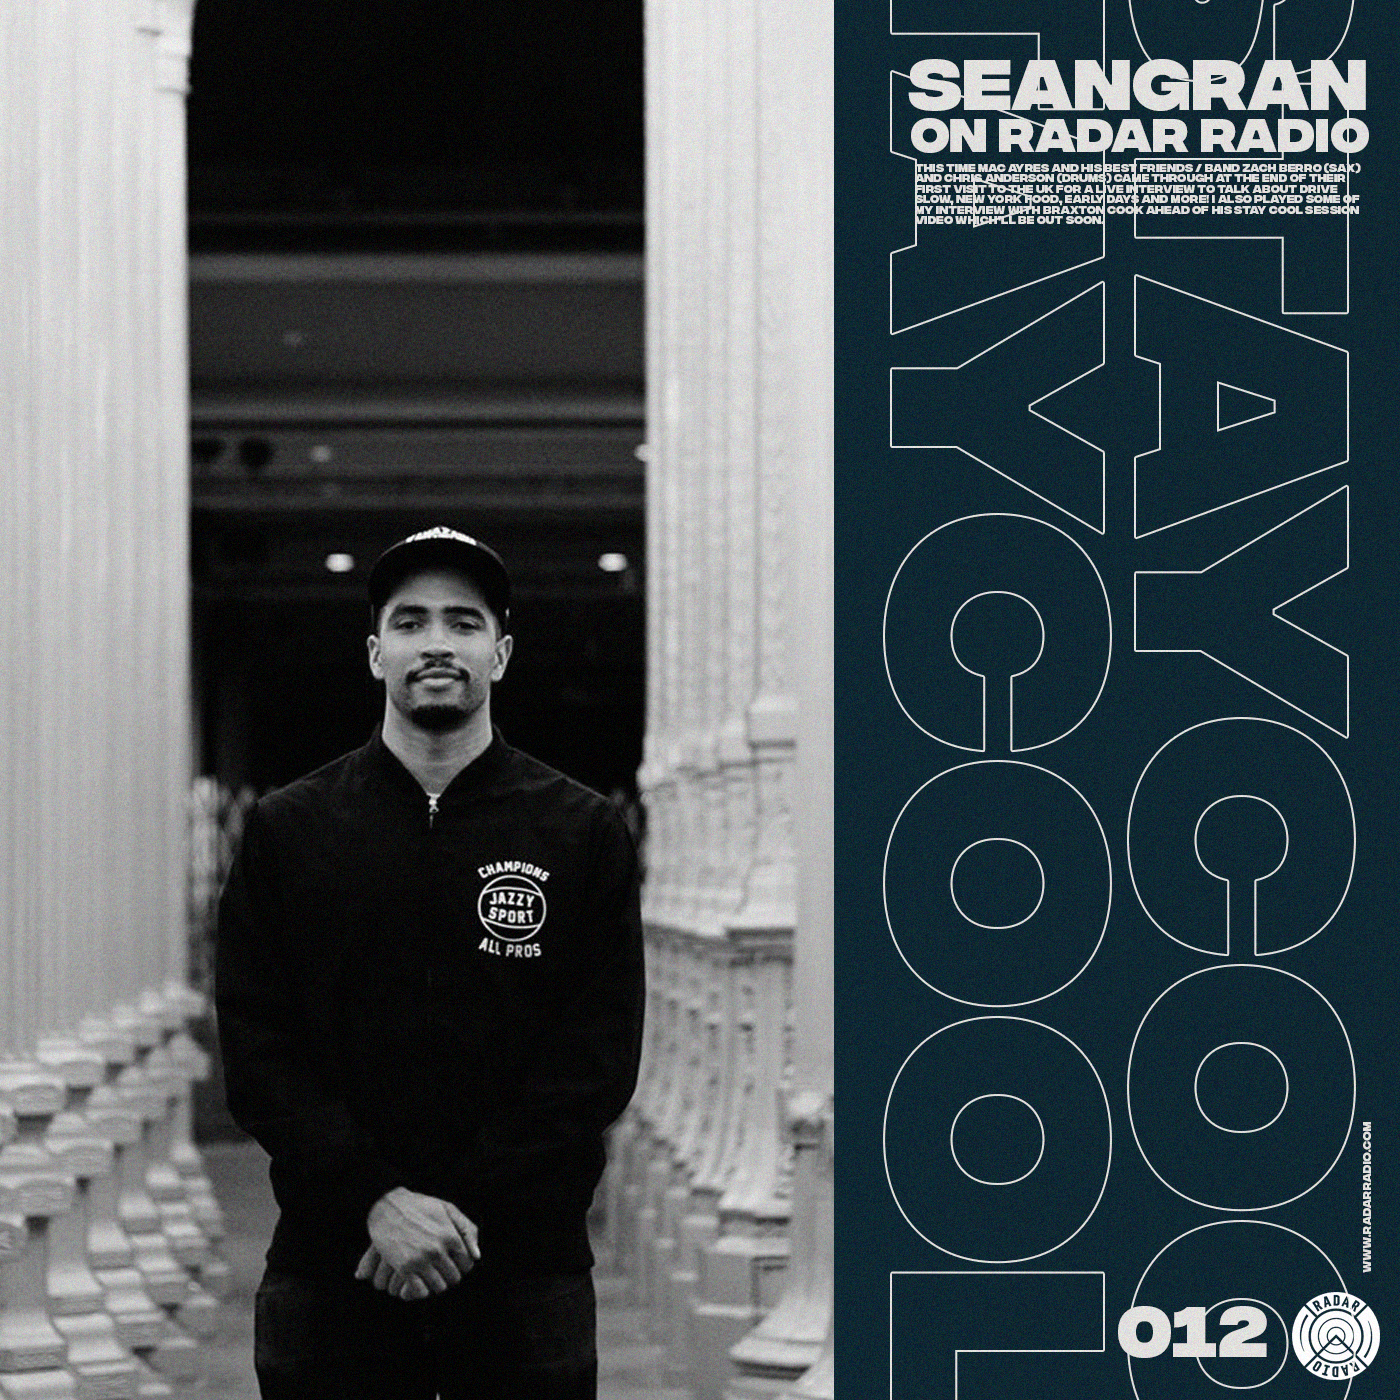 Stay Cool with seangran on Radar Radio.